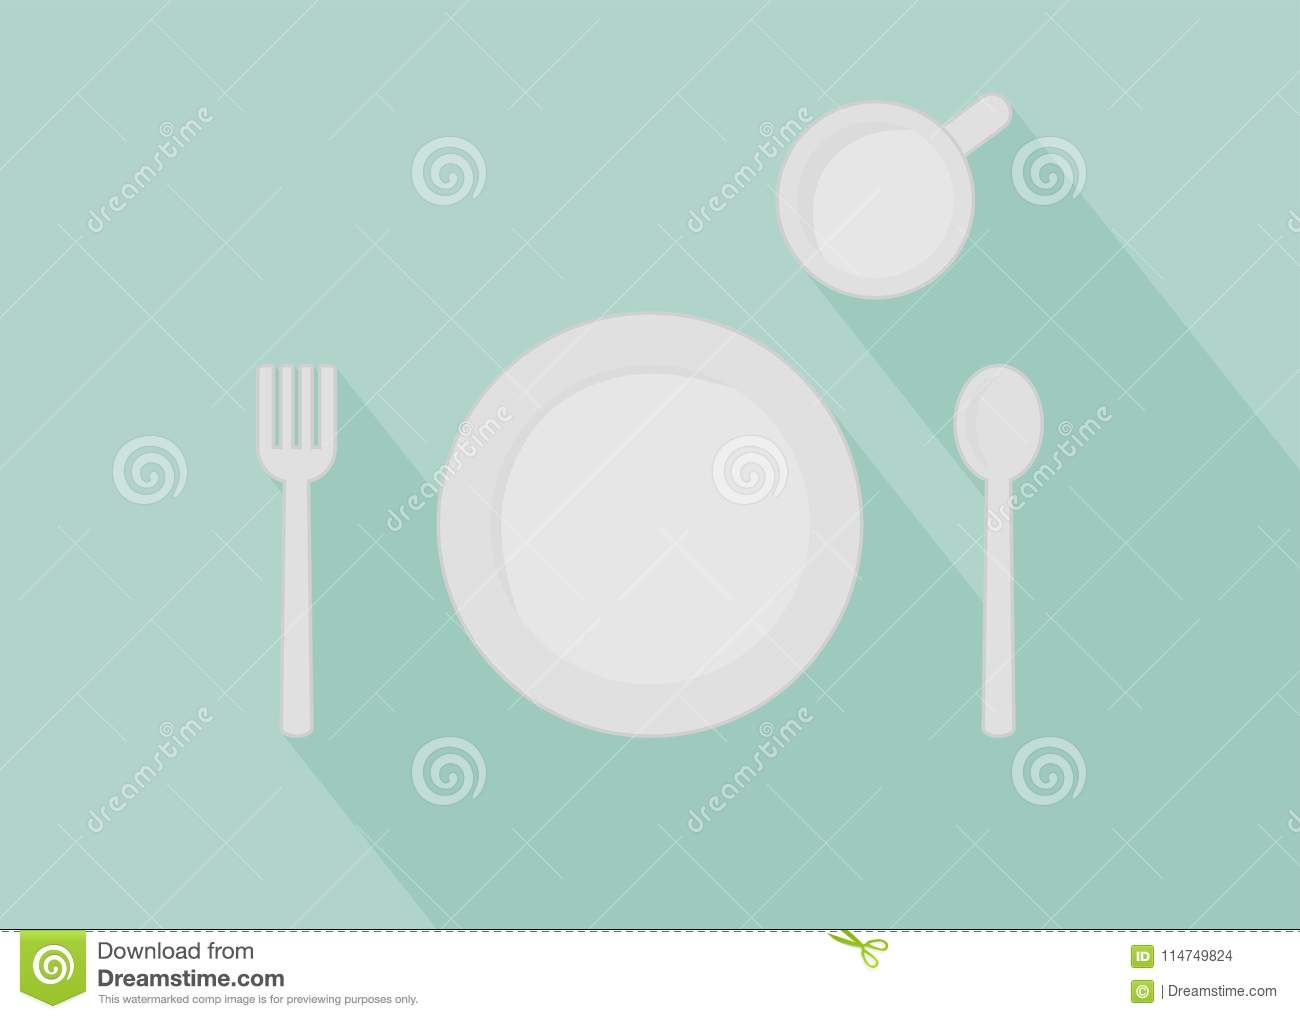 Illustration Of Eat Materials On The Table Stock Vector ...